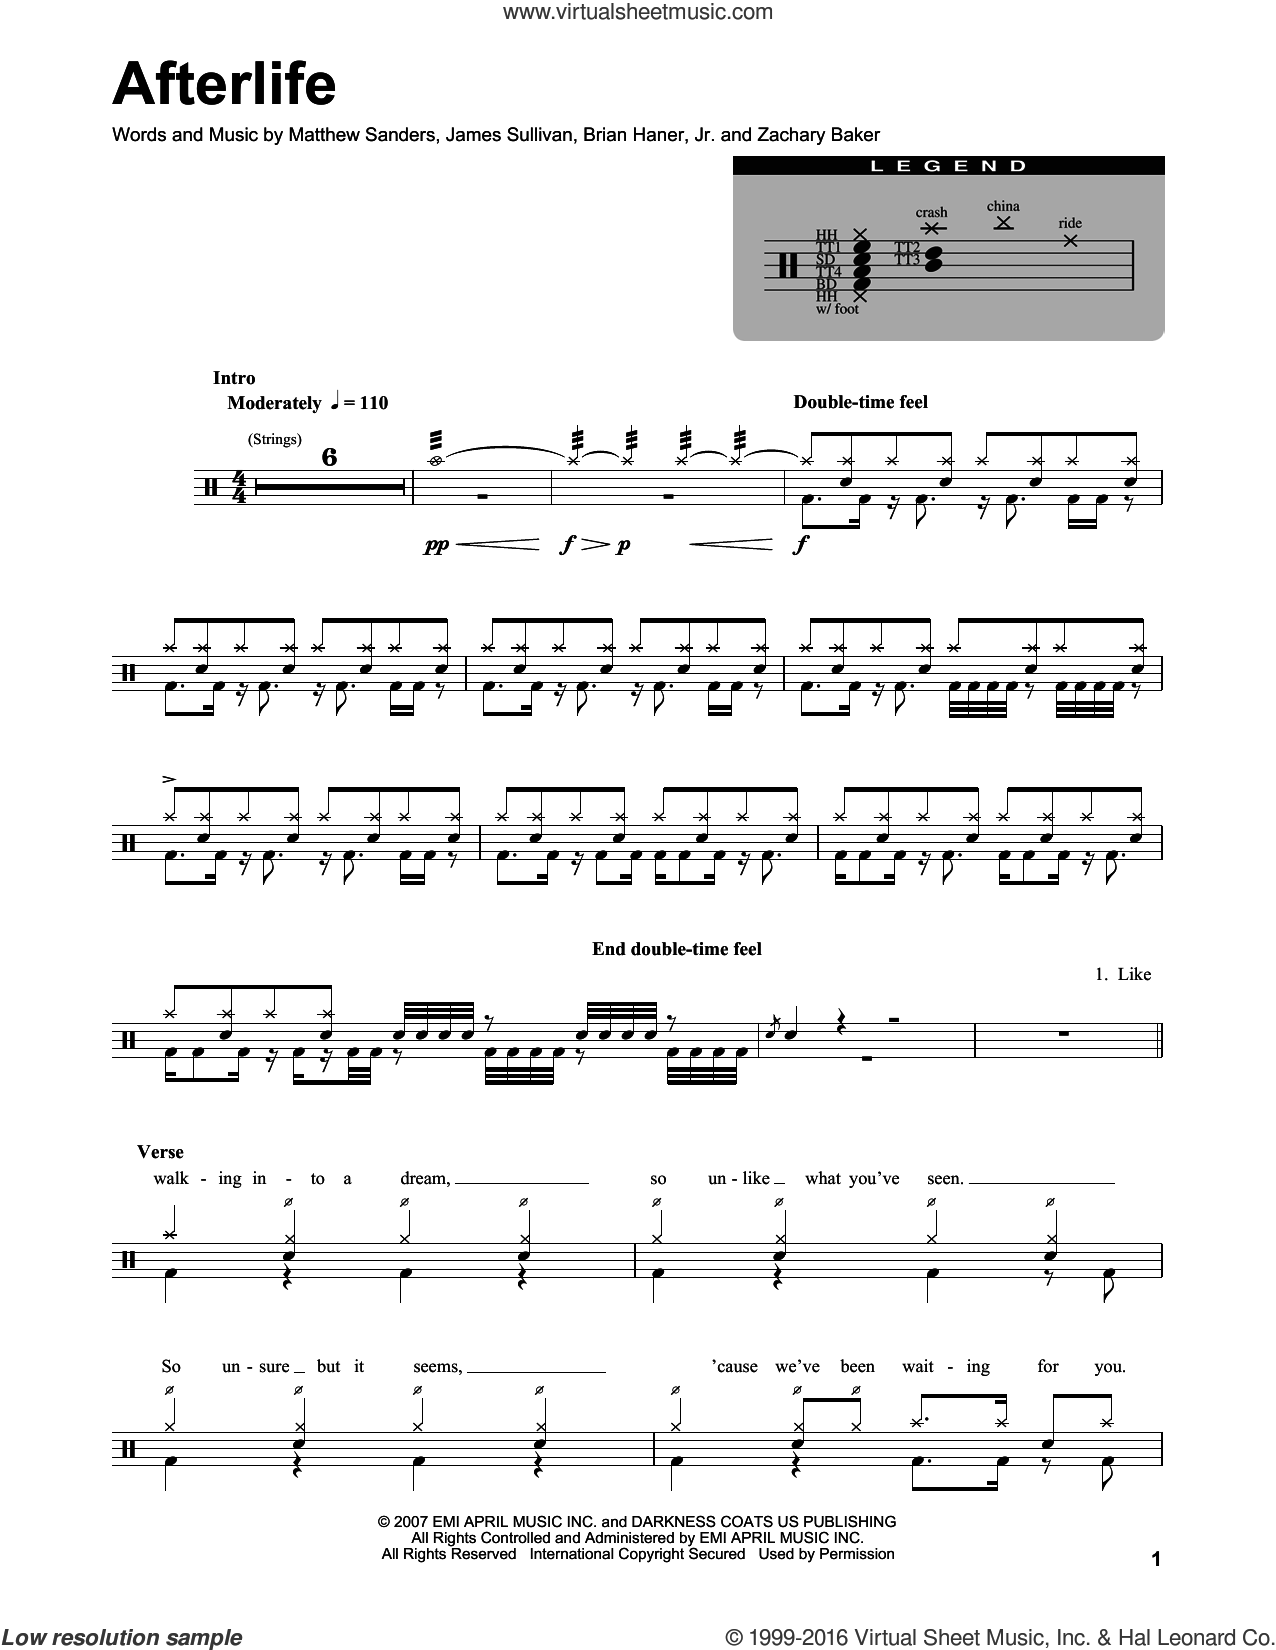 Afterlife sheet music for drums by Avenged Sevenfold, Brian Haner, Jr., James Sullivan, Matthew Sanders and Zachary Baker, intermediate skill level